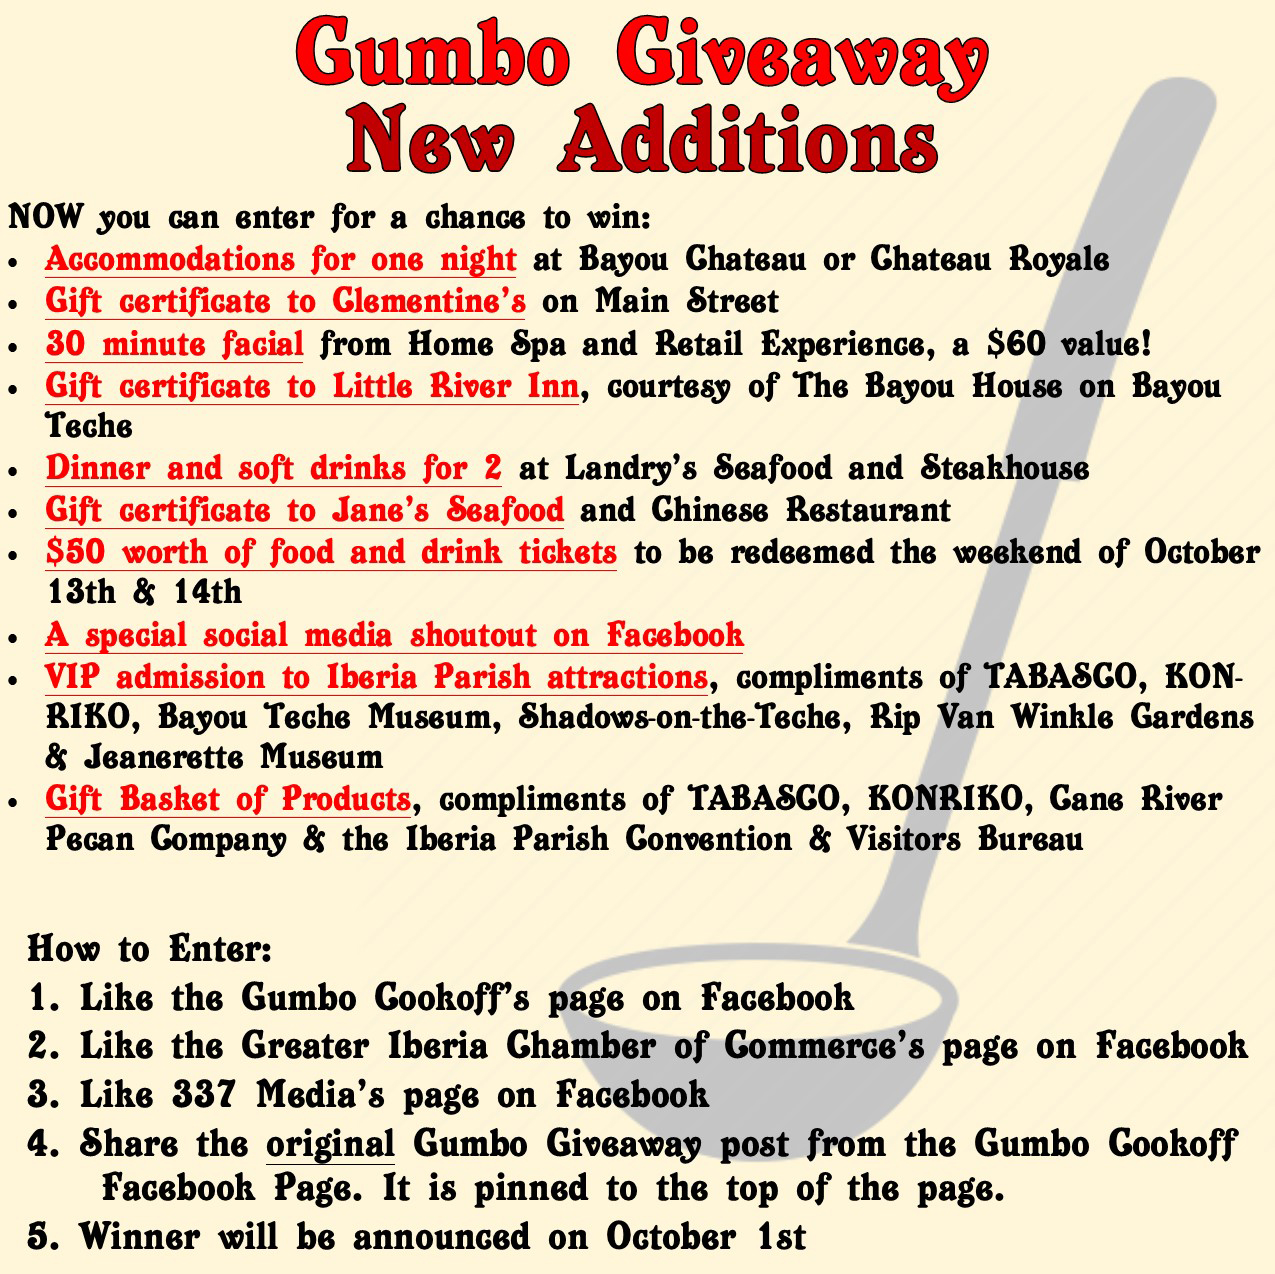 Visit World Championship Gumbo Cookoff on Facebook